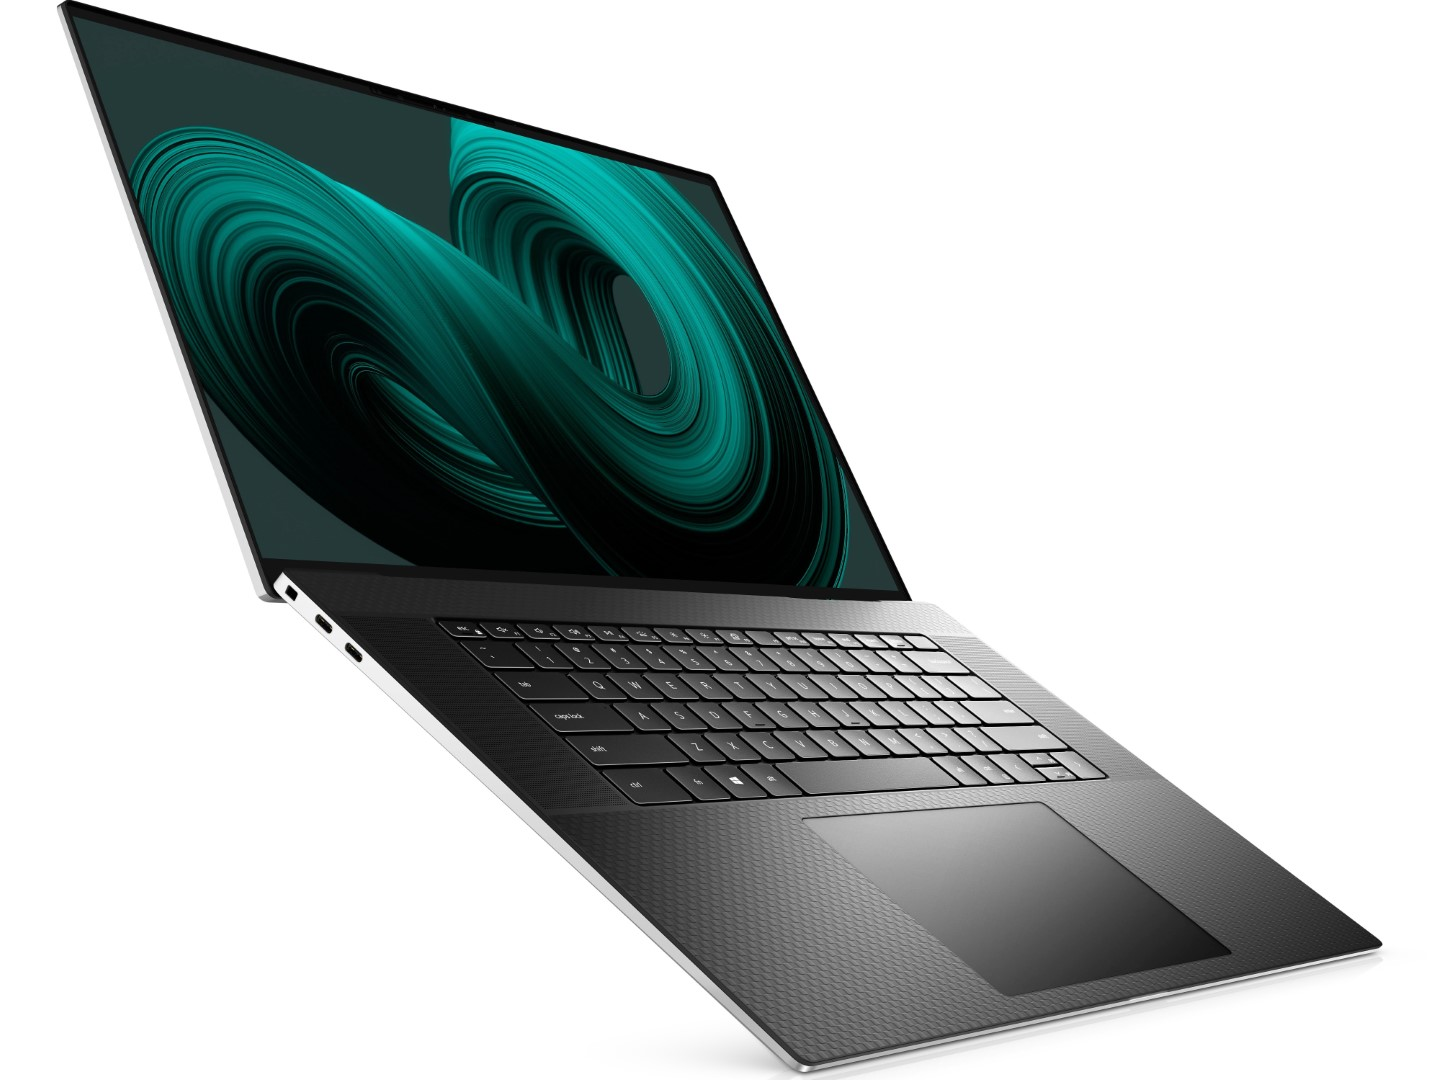 Dell XPS 9710 (17.3-Inch, 2021)